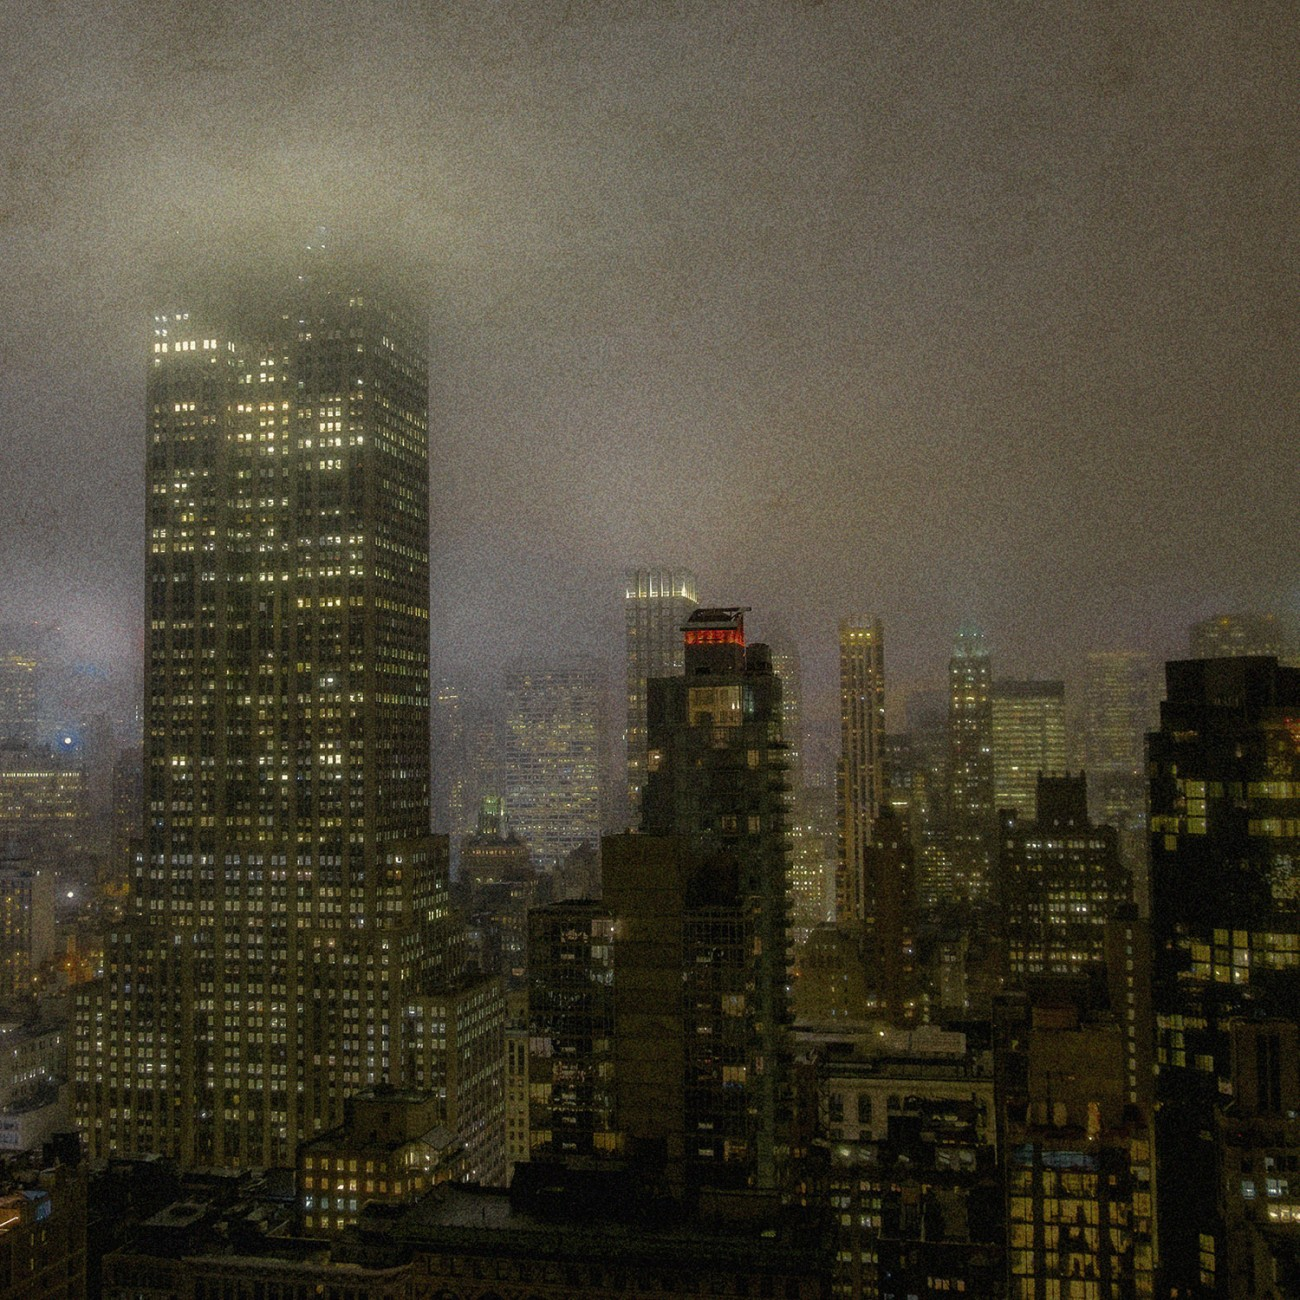 Night fog in the city, NY, 2015